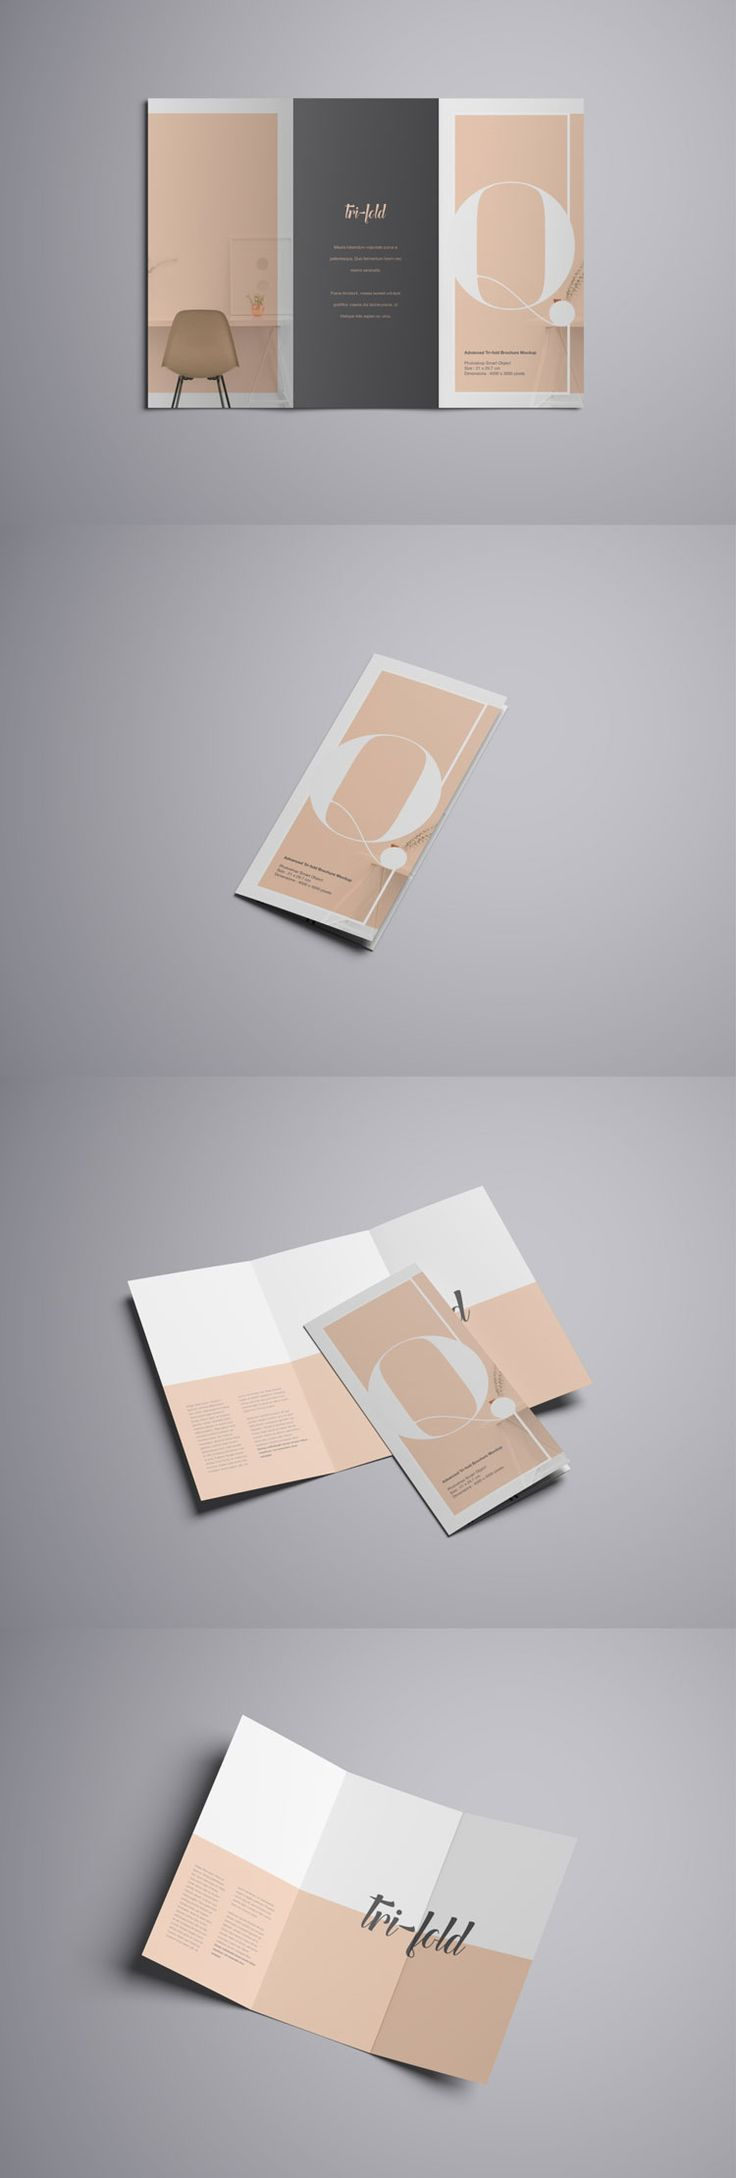 Advanced Trifold Brochure Free PSD Mockup | Pixlov